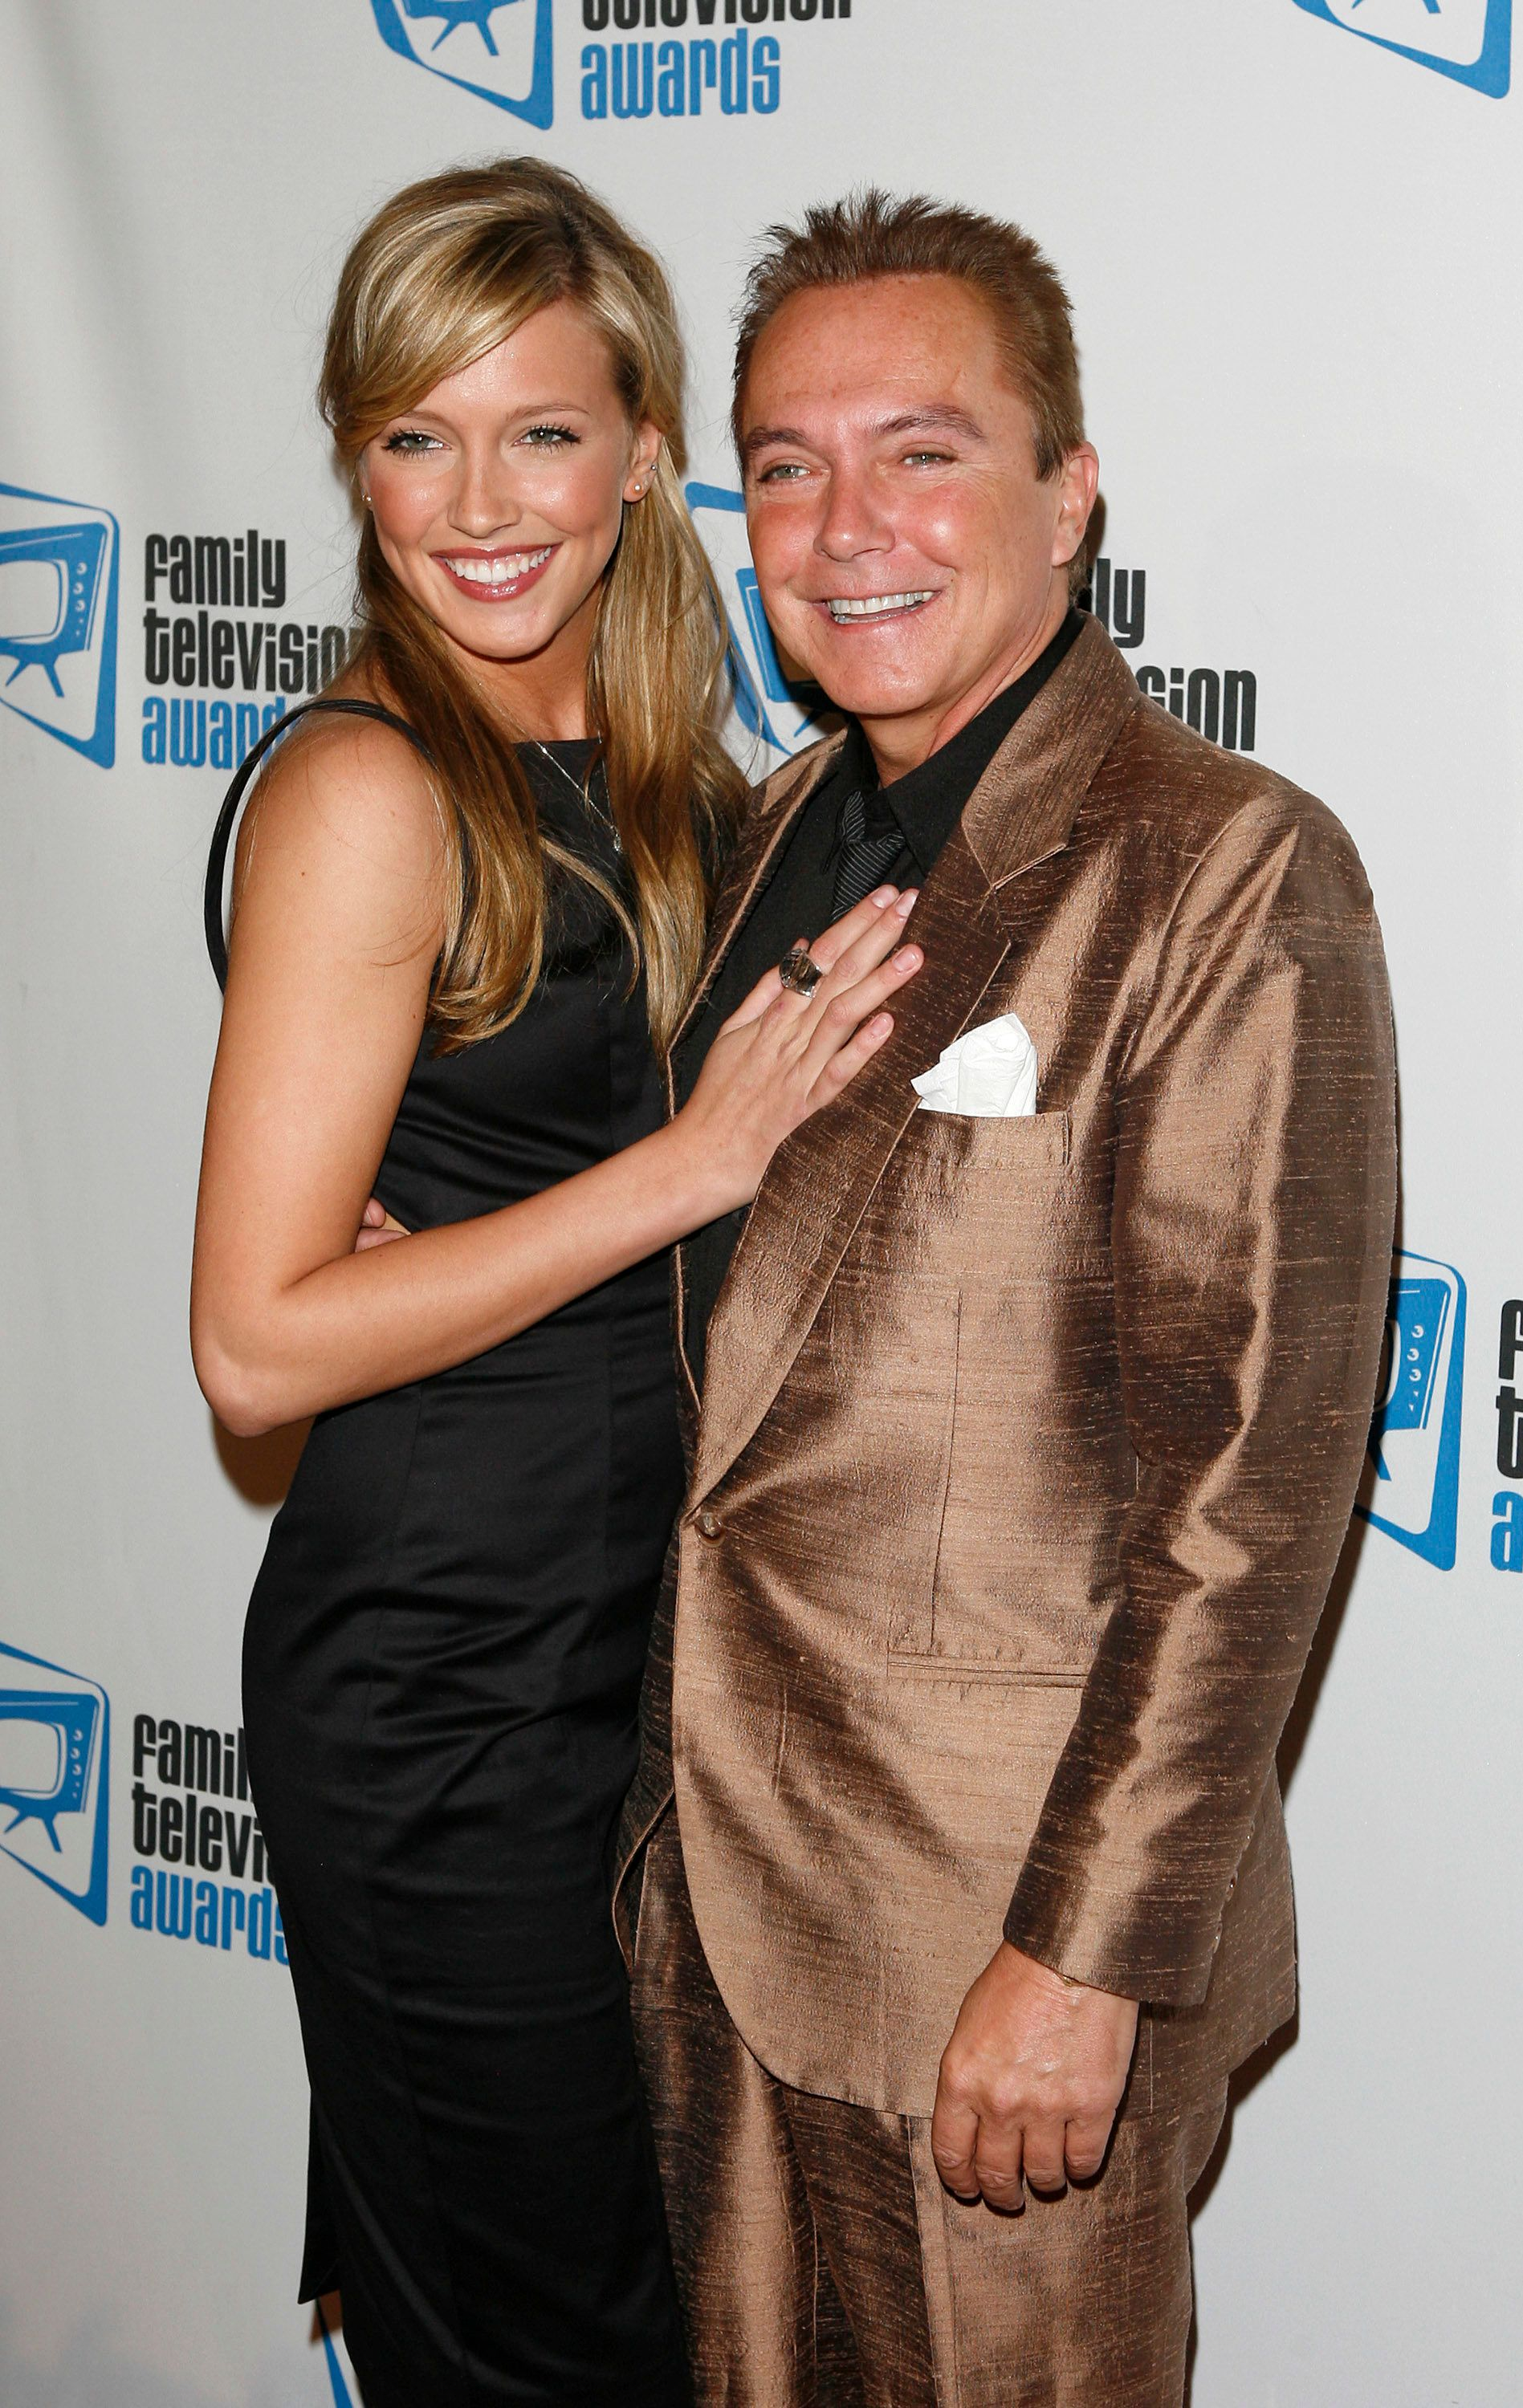 LOS ANGELES, CA - NOVEMBER 28: Katie Cassidy and David Cassidy arrive at the 9th annual Family Television Awards held at the Beverly Hilton Hotel on November 28, 2007 in Los Angeles, California. (Photo by Jean Baptiste Lacroix/WireImage)